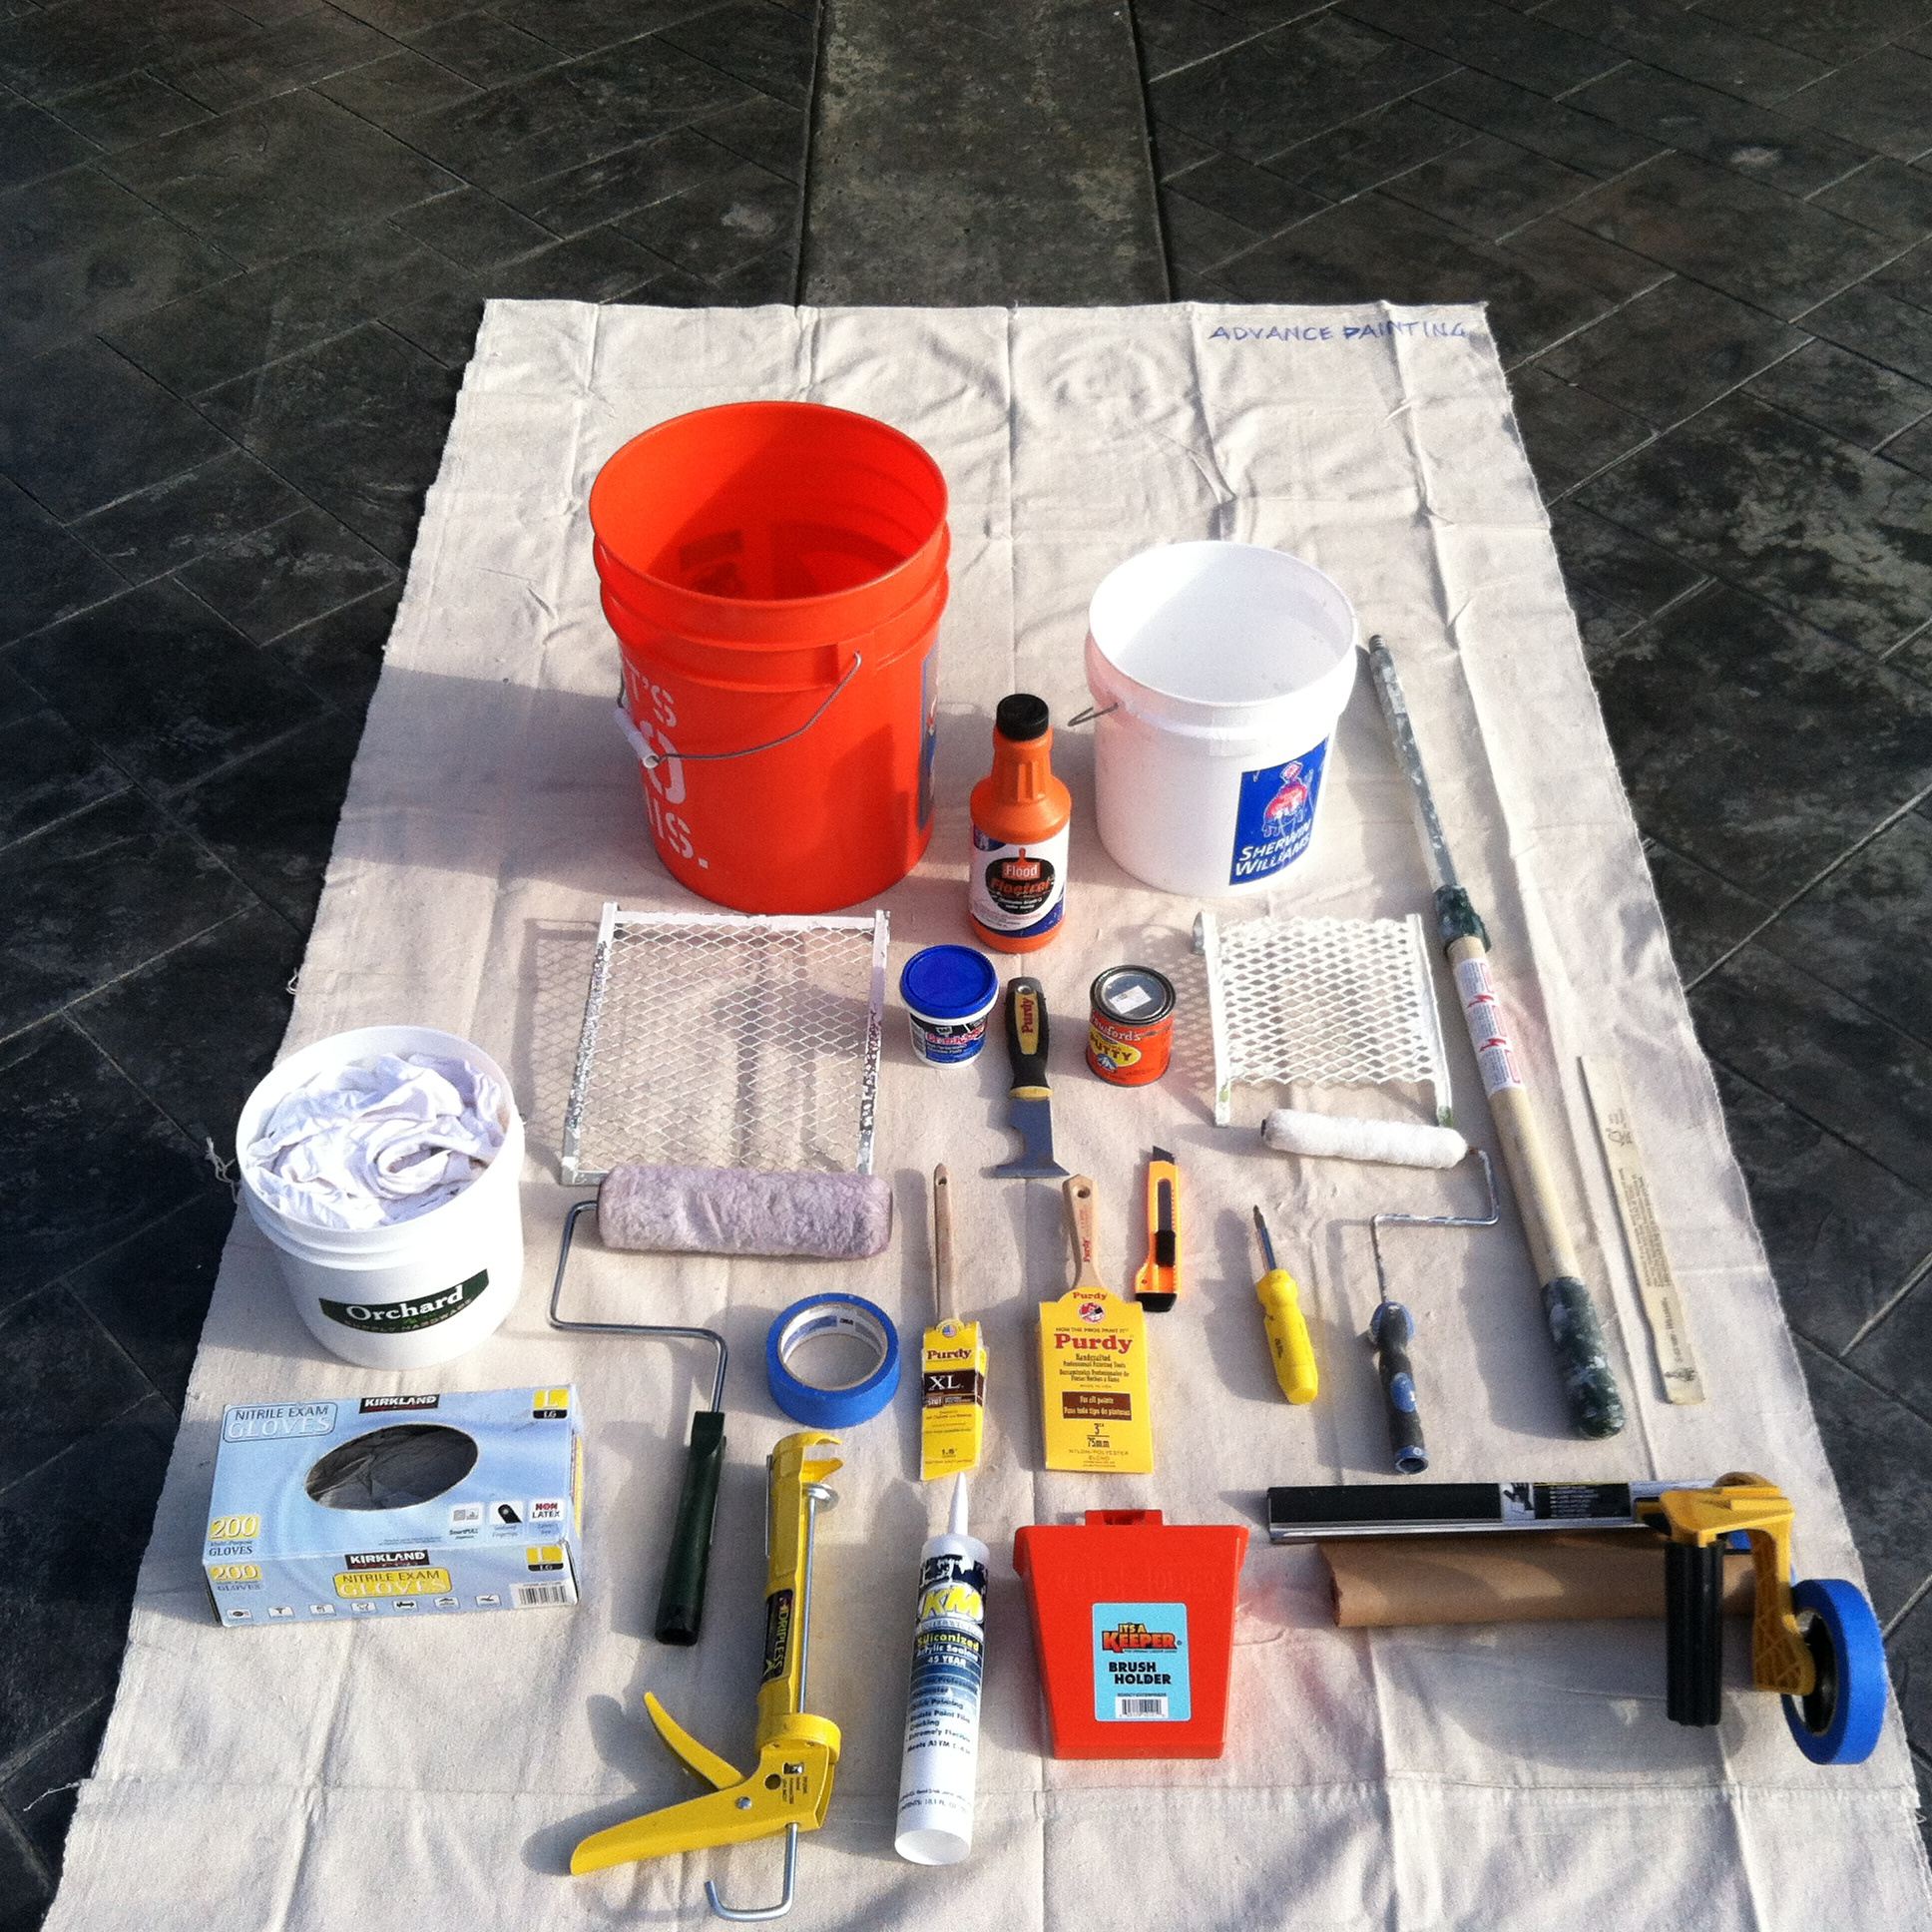 Laying out your tools (in one location) is an important aspect of starting your paint project correctly.